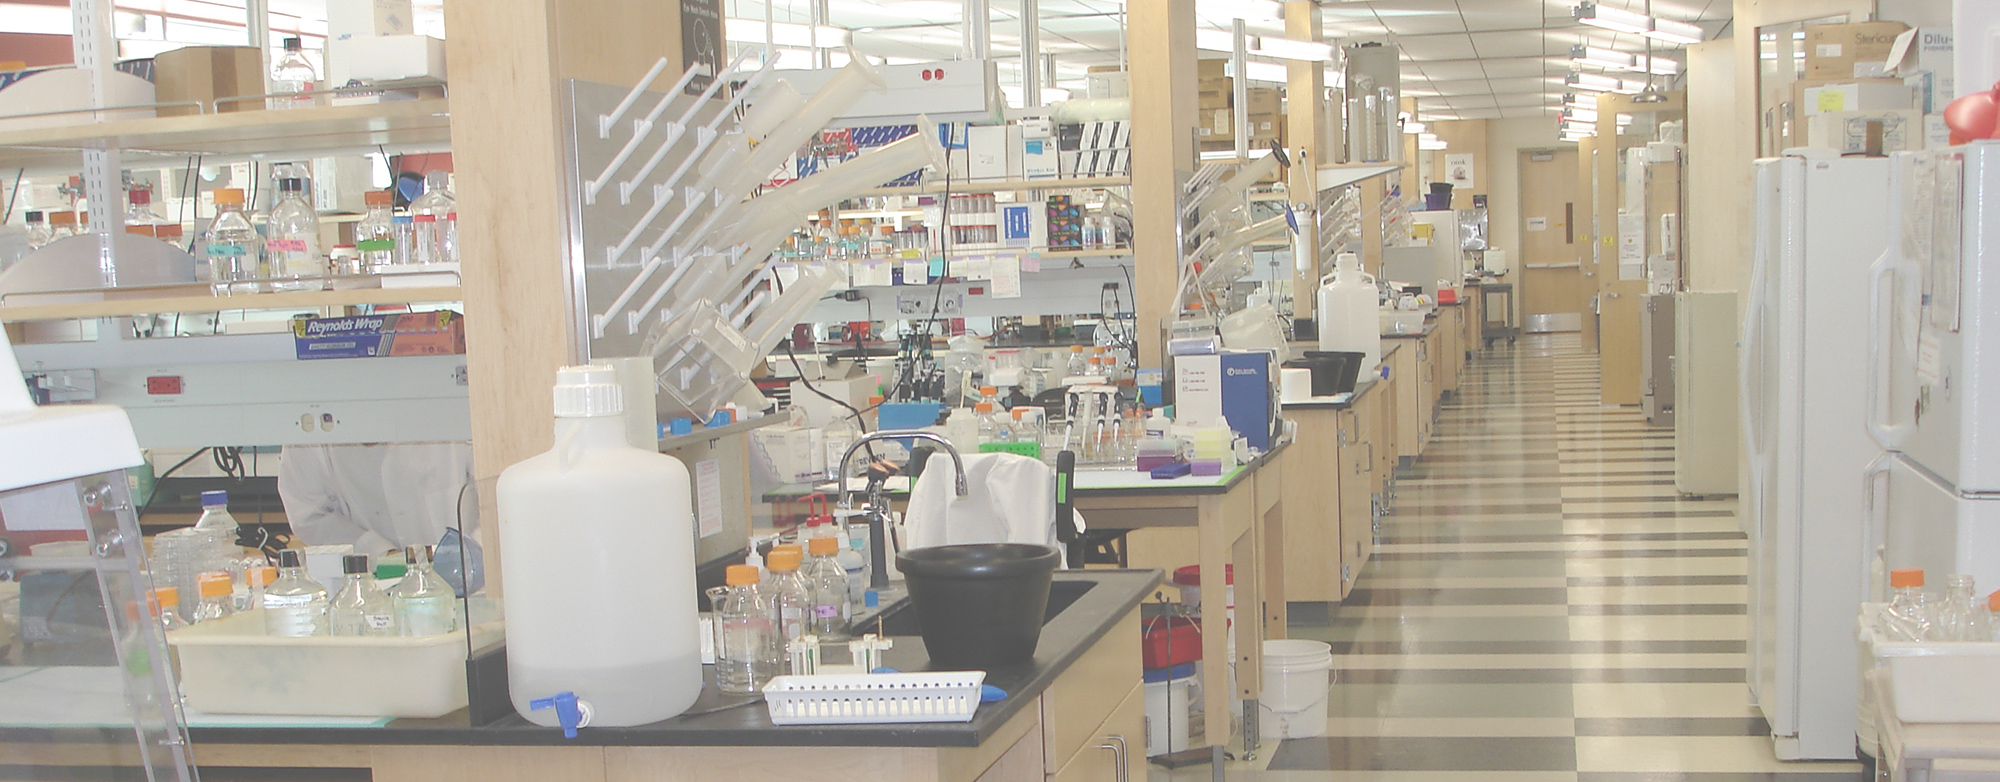 A reseach lab with equipment and tools